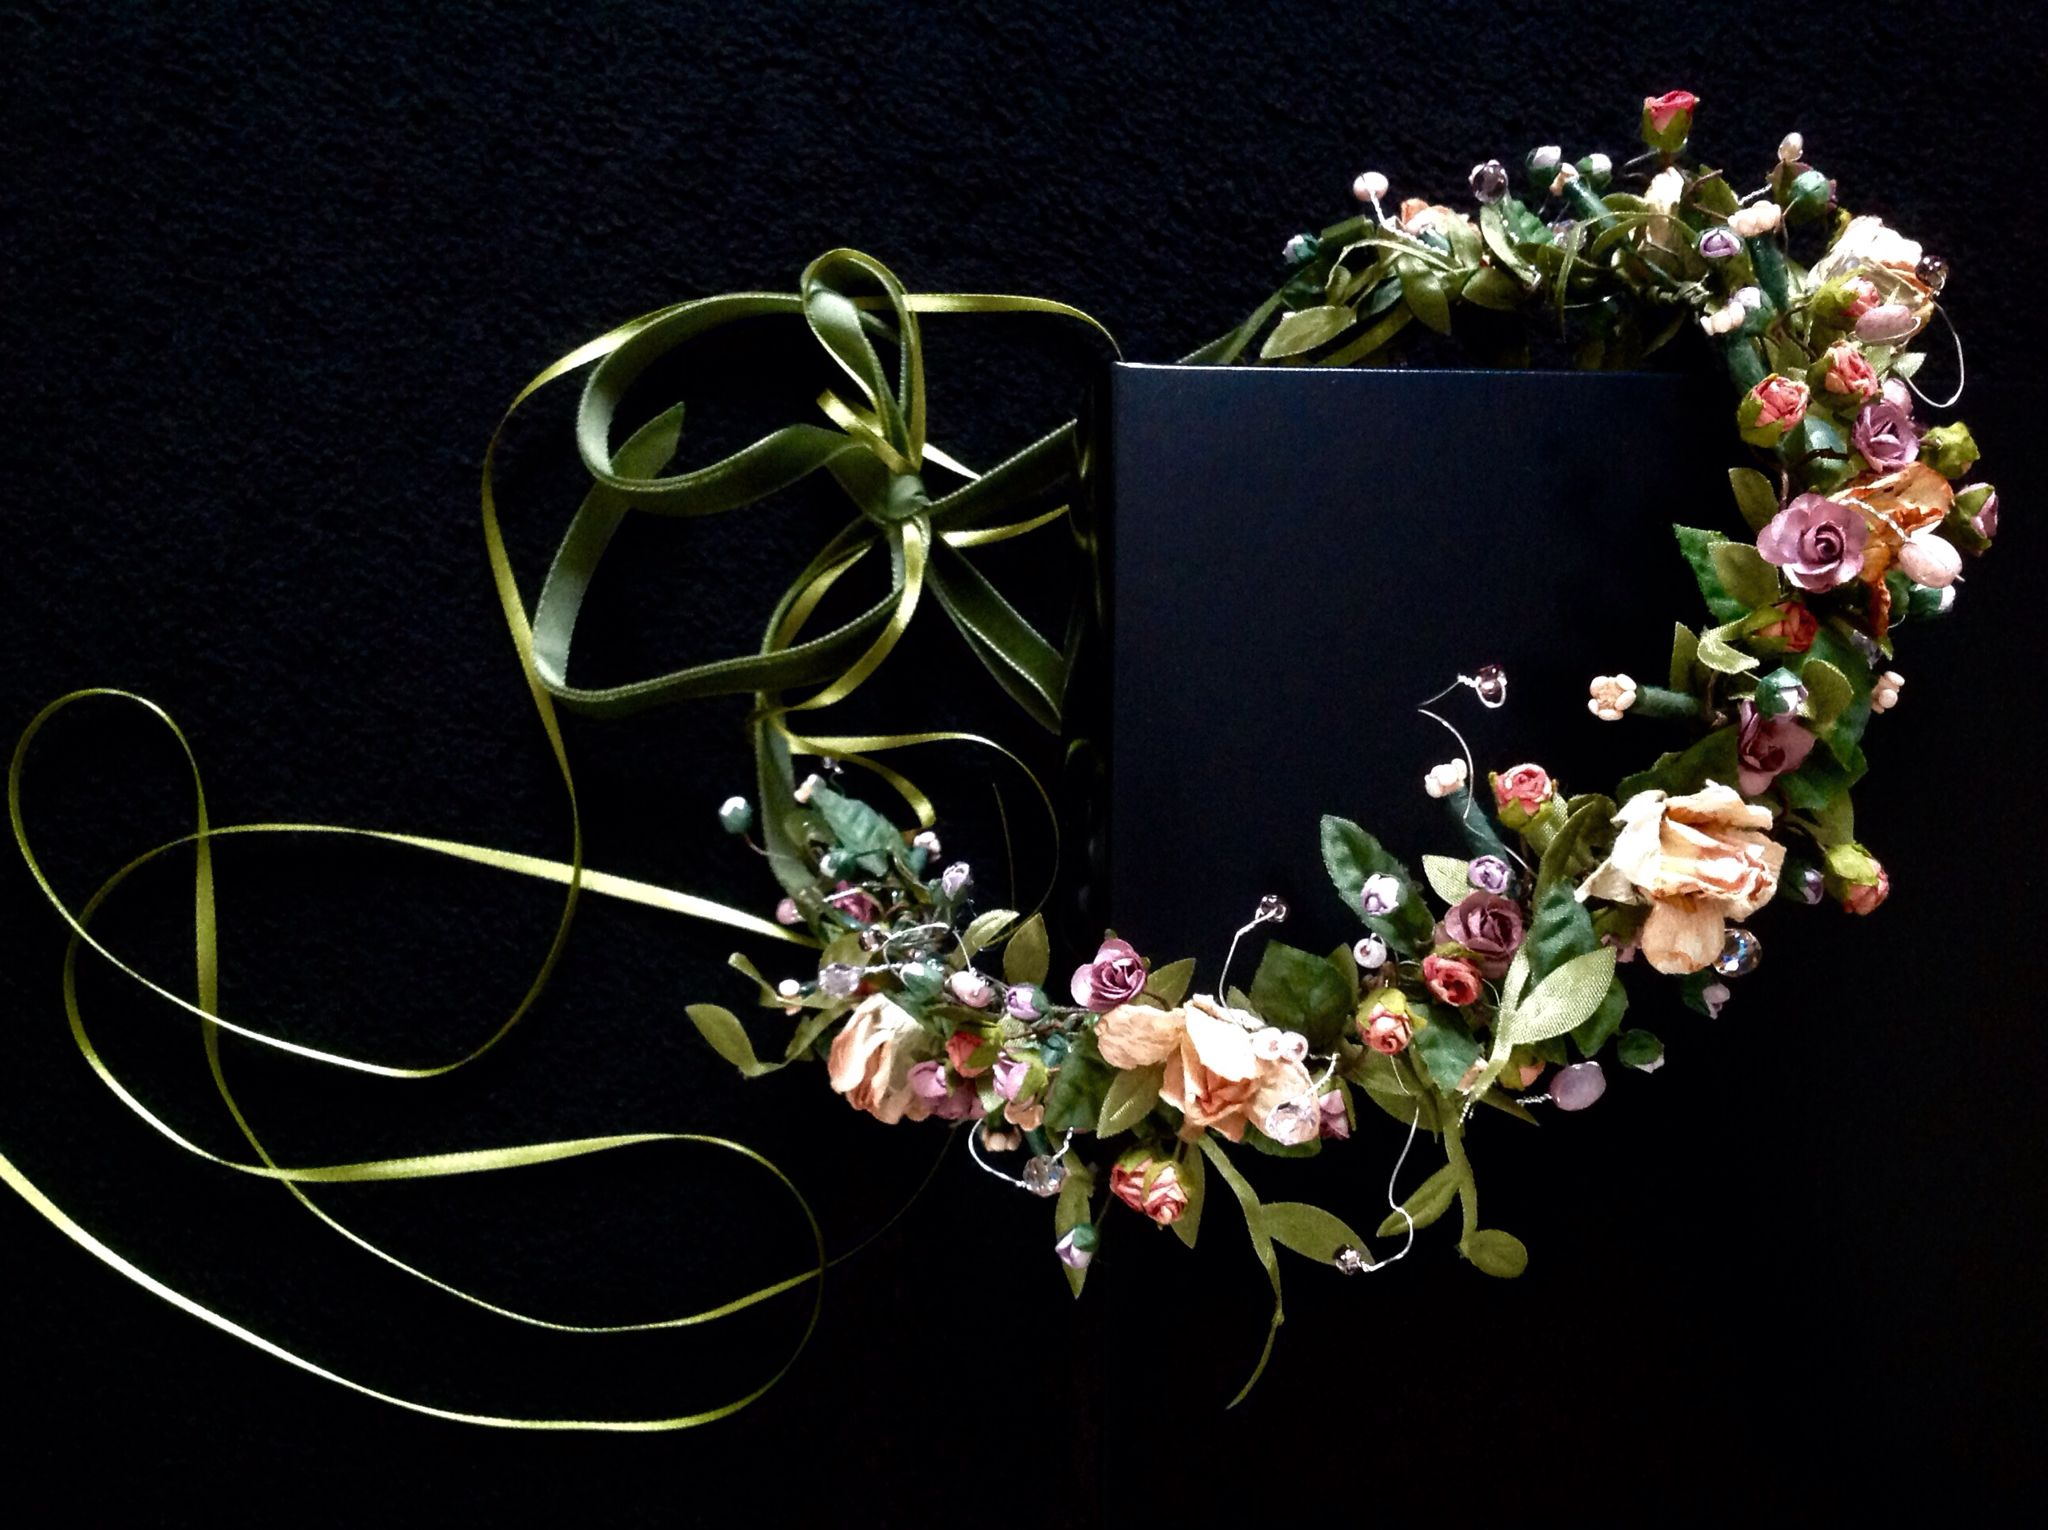 My most favourite creation to date !! This gorgeous floral crown in tiny vintage paper flowers and crystals, tied with green velvet and satin ribbons.